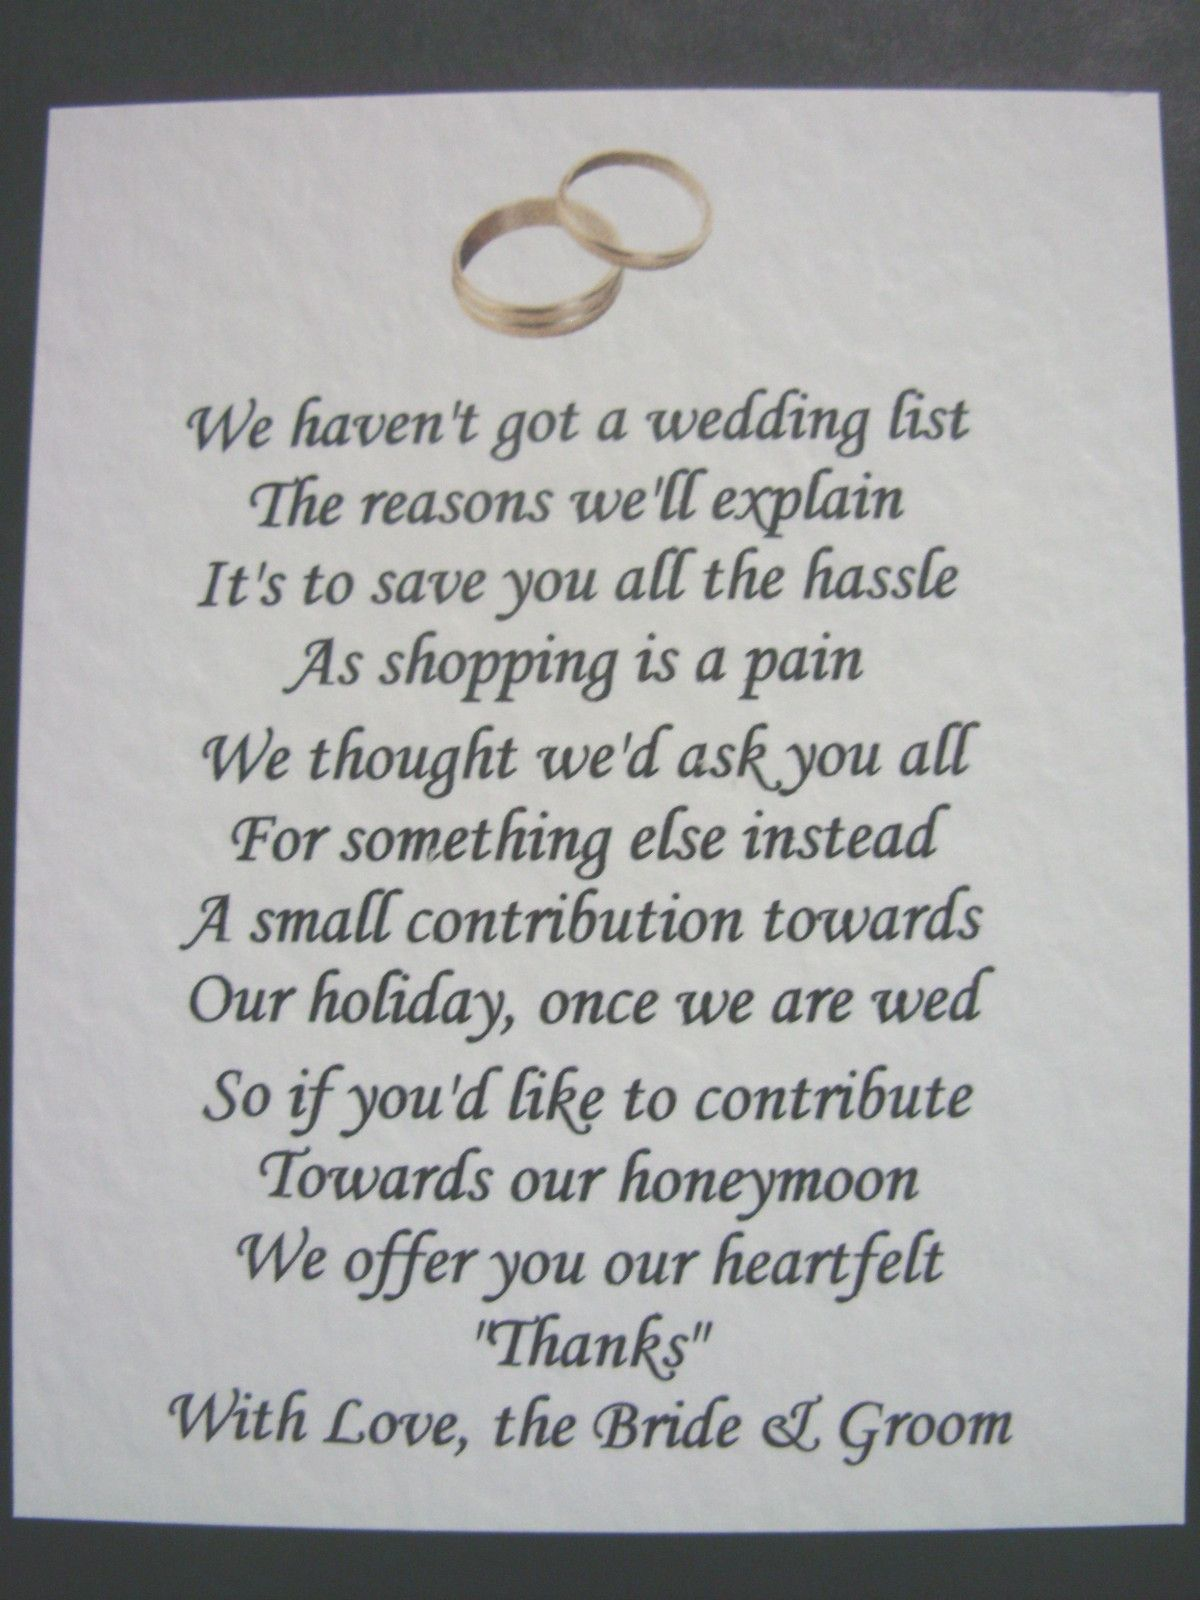 40 Wedding Poems Asking For Money Gifts Not Presents Ref No 2 Ebay